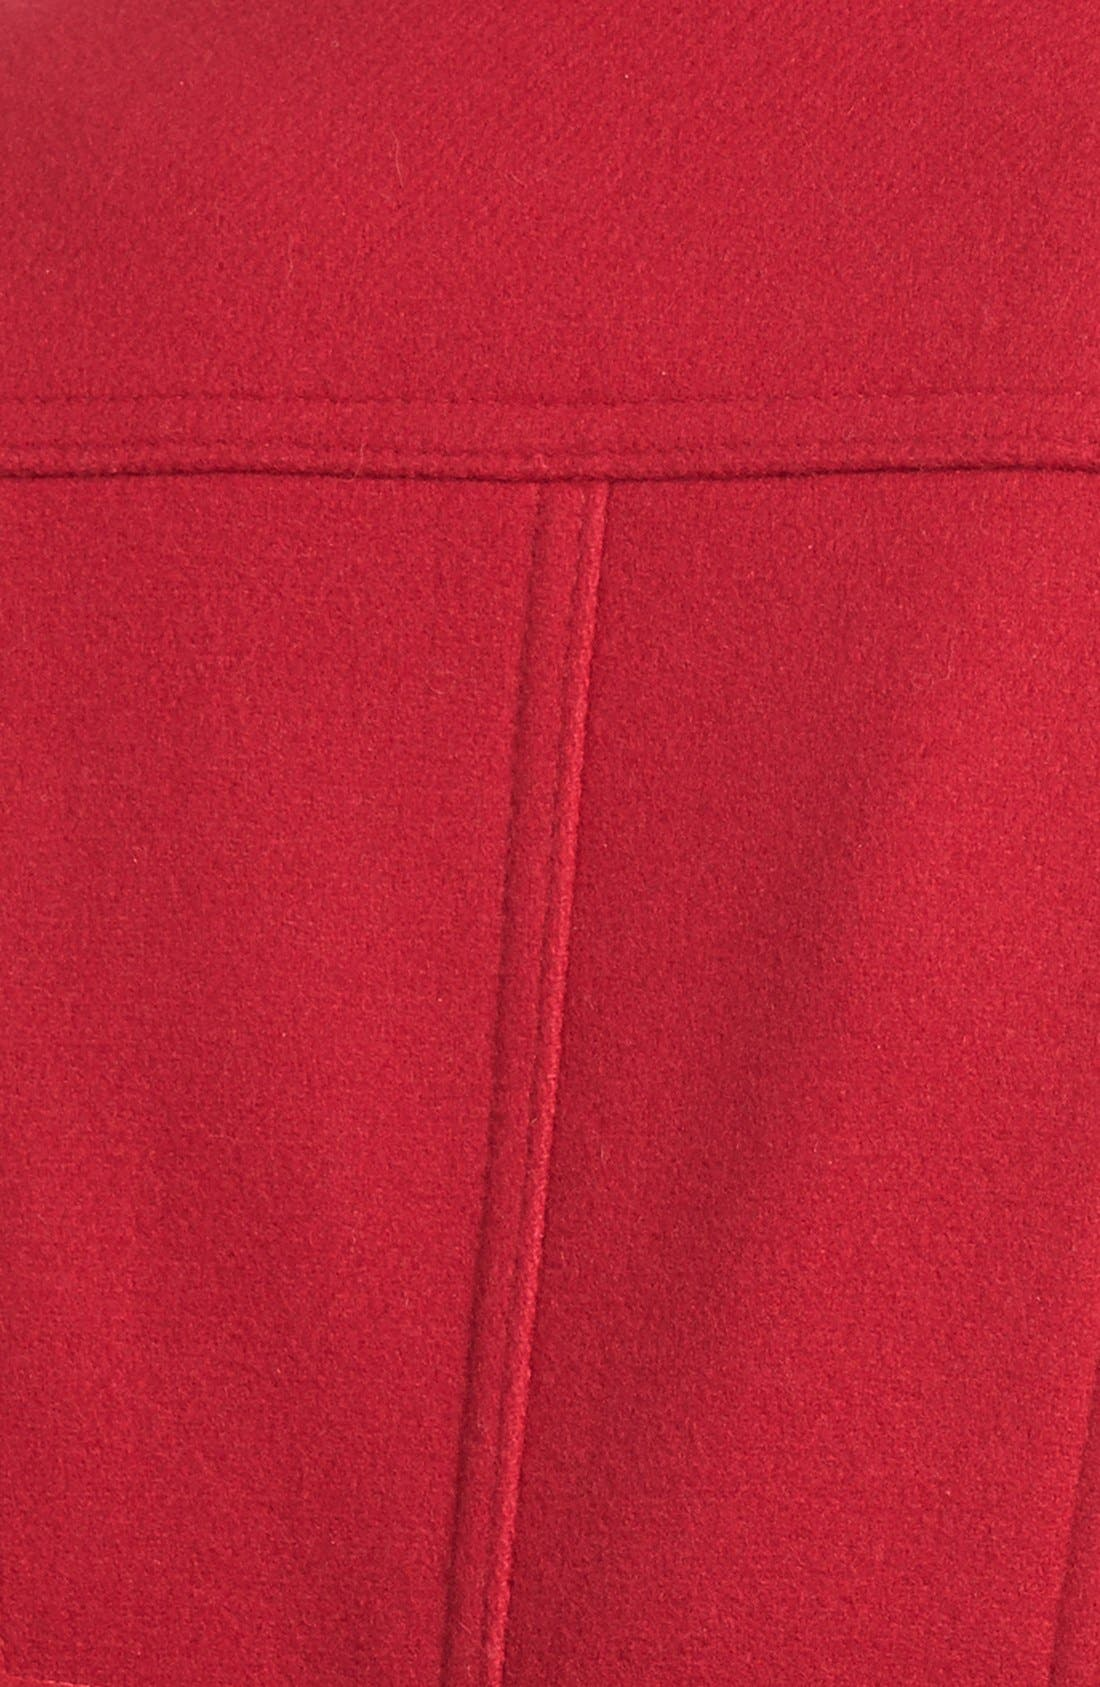 Wool Blend Peacoat,                             Alternate thumbnail 3, color,                             Red